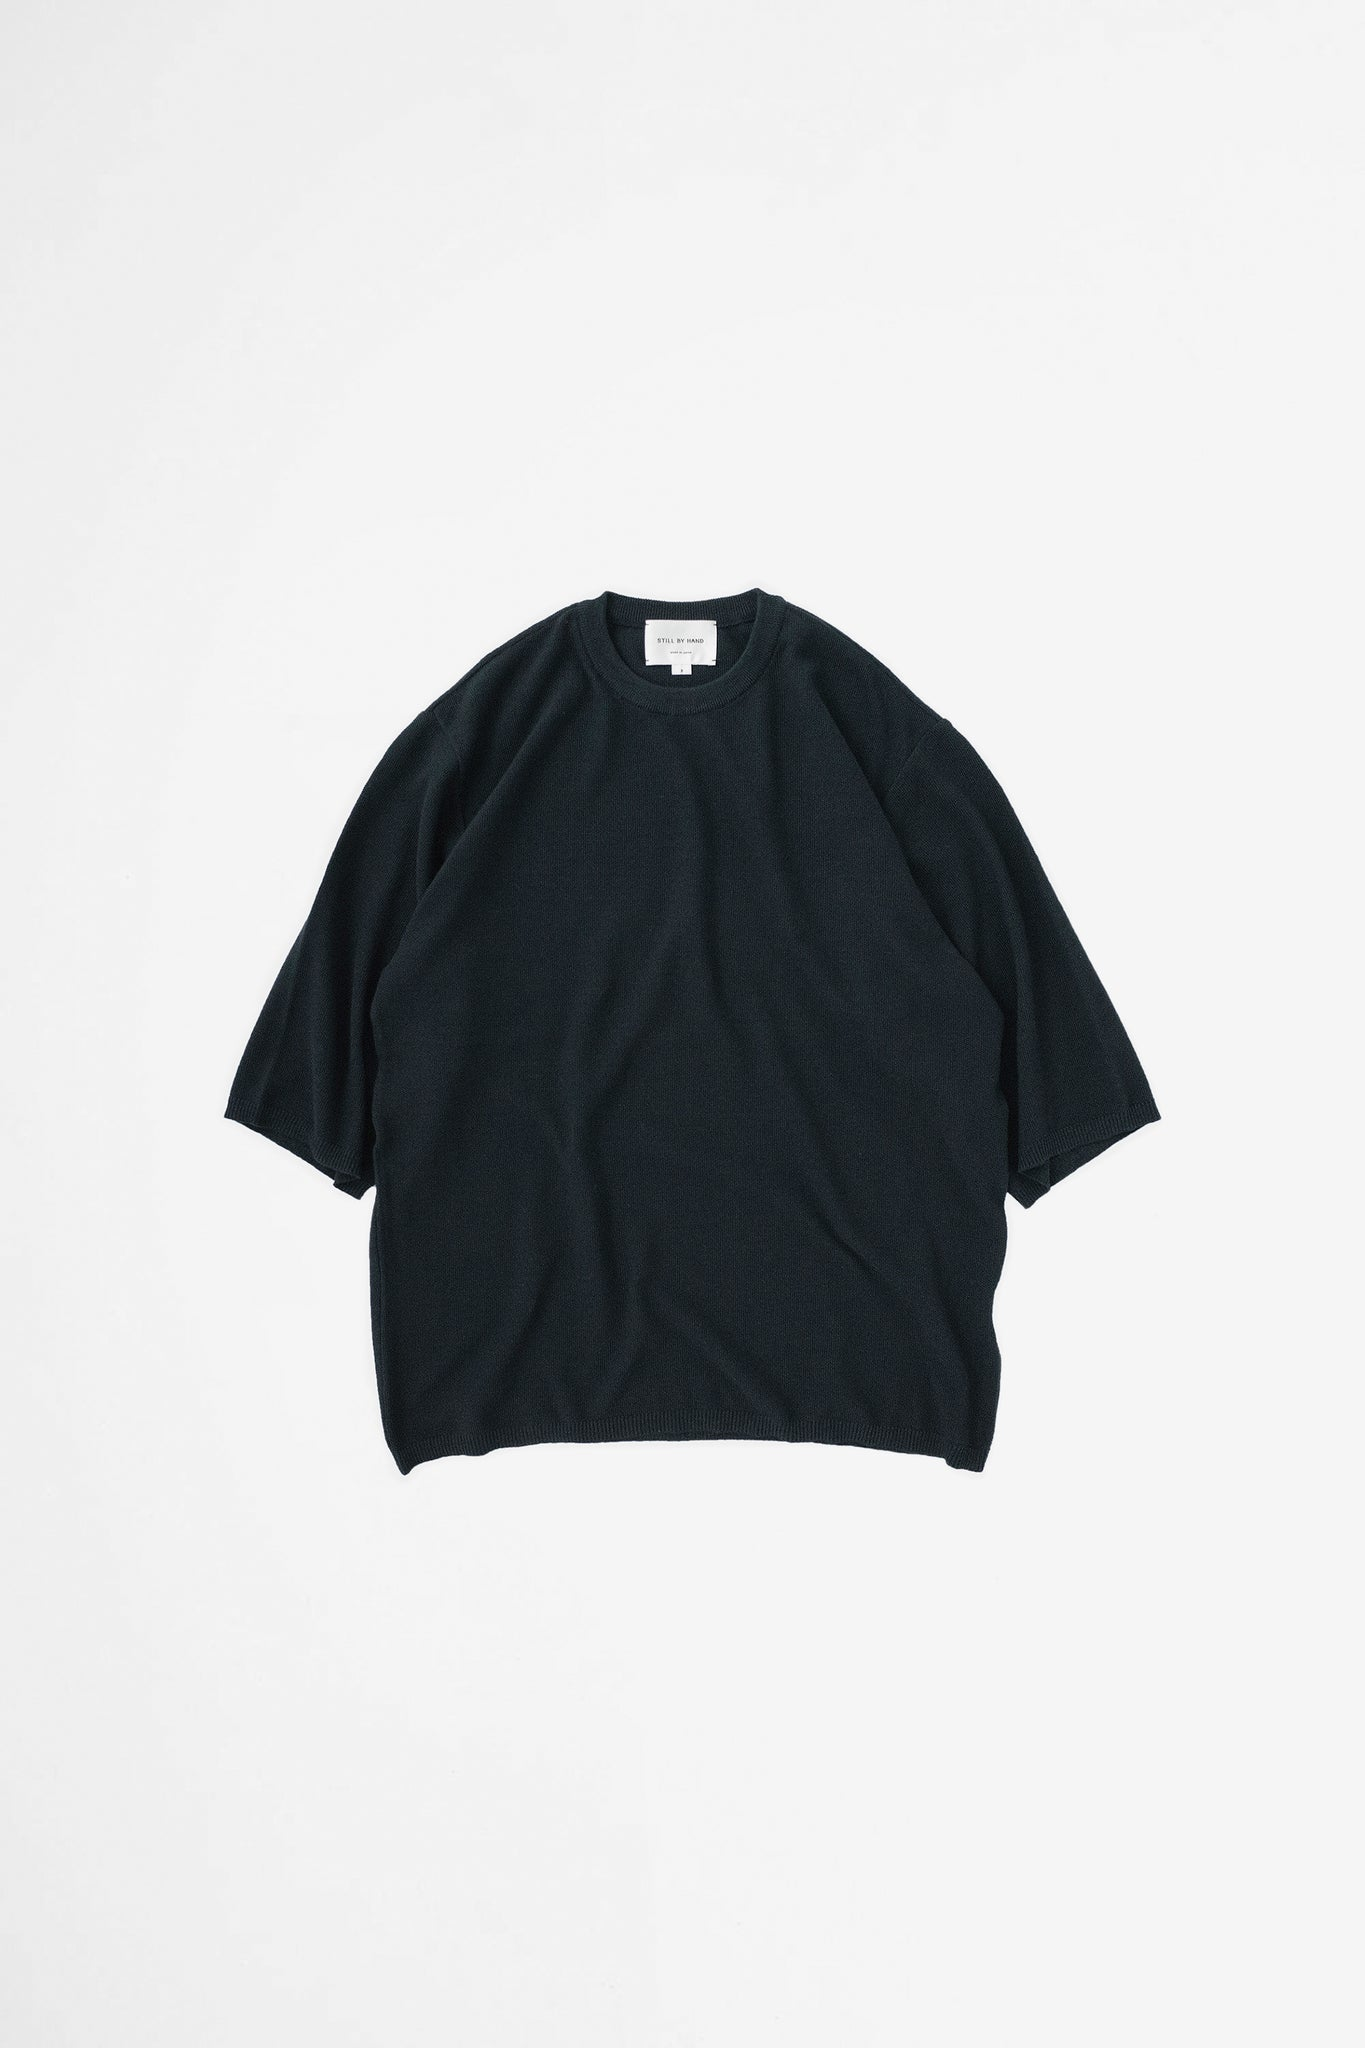 Half sleeve knit t-shirt black